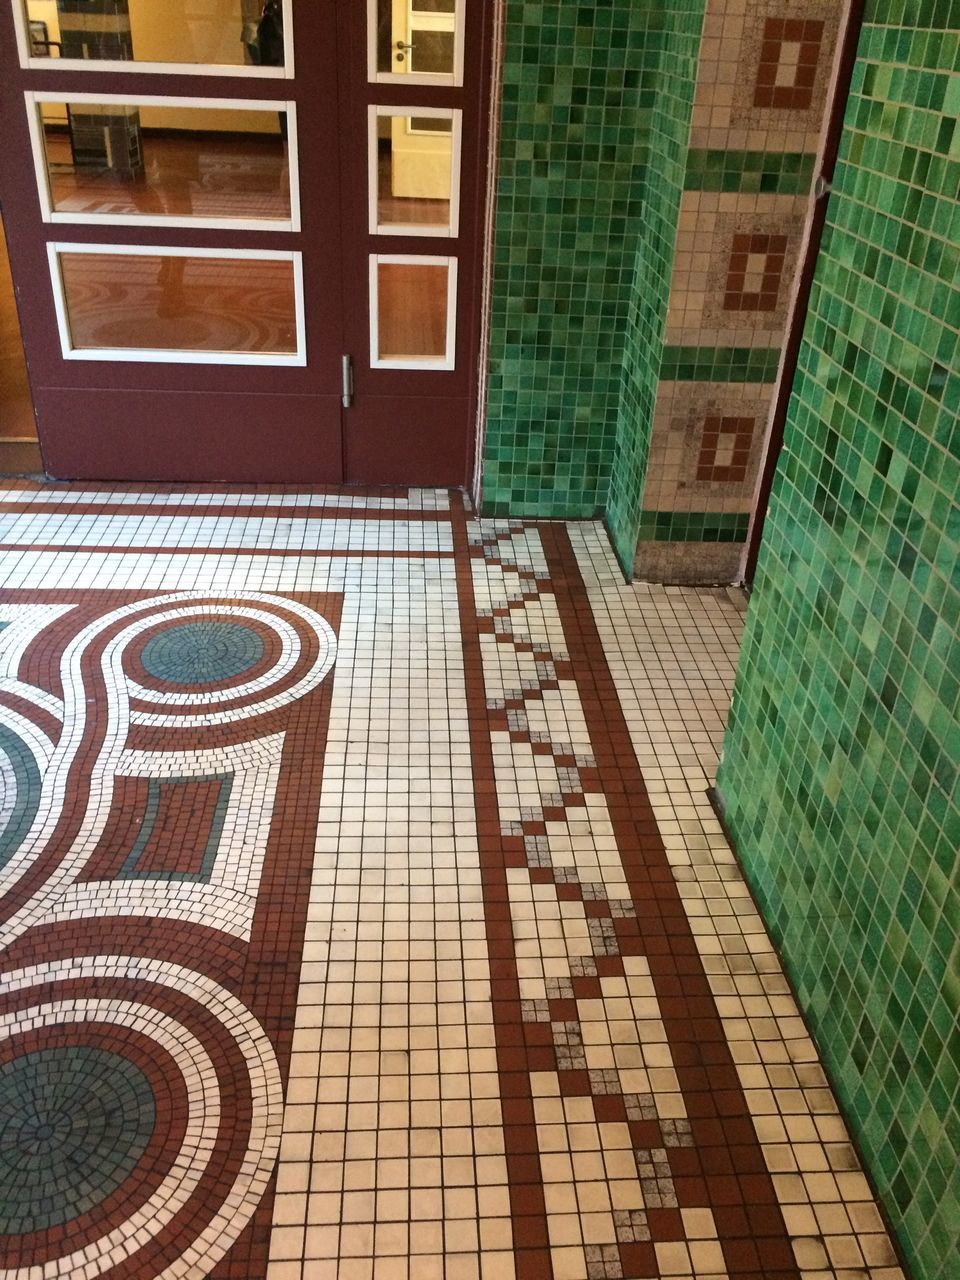 tiled floor, tile, window, architecture, mosaic, pattern, day, indoors, no people, built structure, multi colored, building exterior, modern